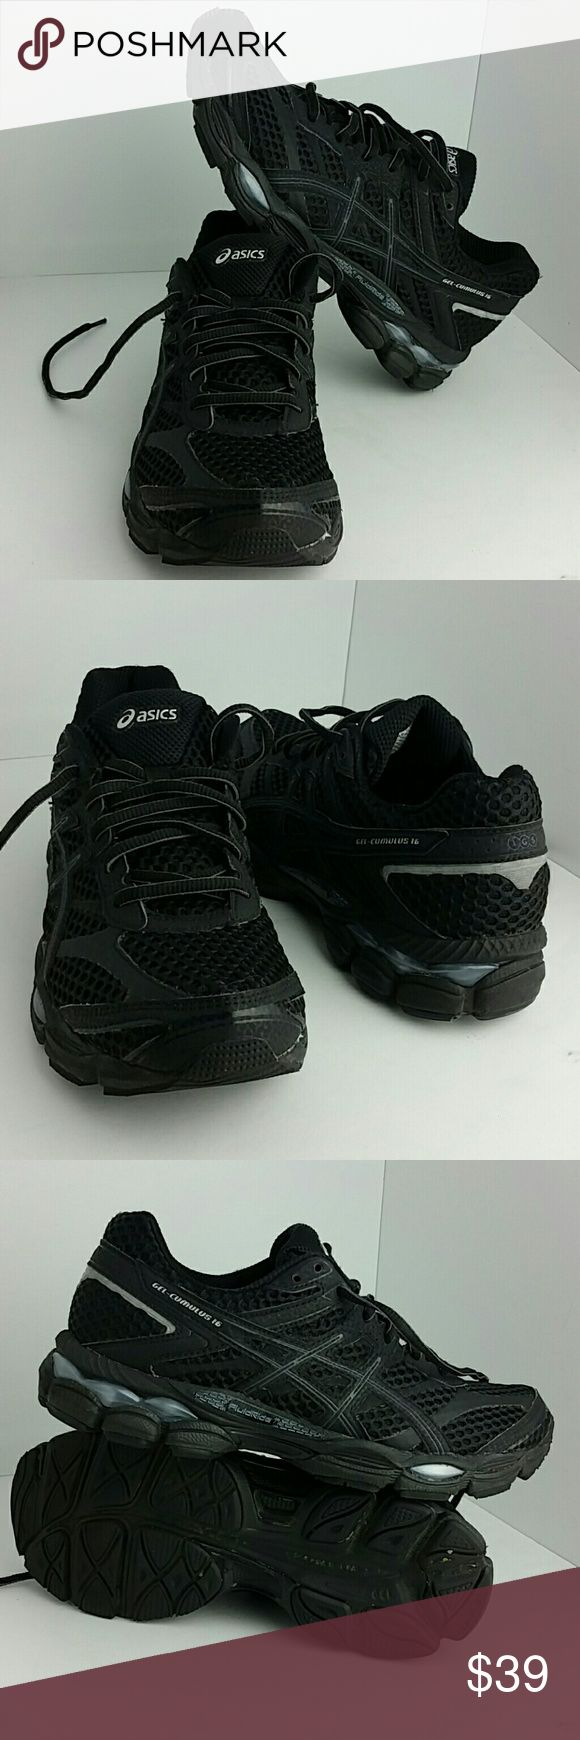 ASICS GEL-CUMULUS 16 WOMEN SHOES VERY CLEAN INSIDE-OUT   SKE # KM4 asics Shoes Athletic Shoes